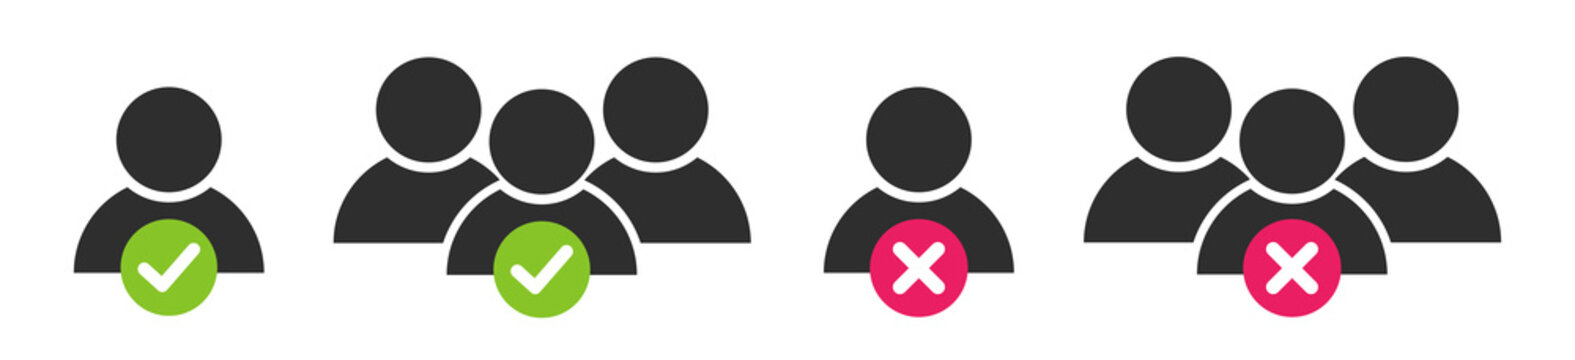 People icons set. User group with check mark and cross sign. Team communication icon symbol. Isolated vector illustration.